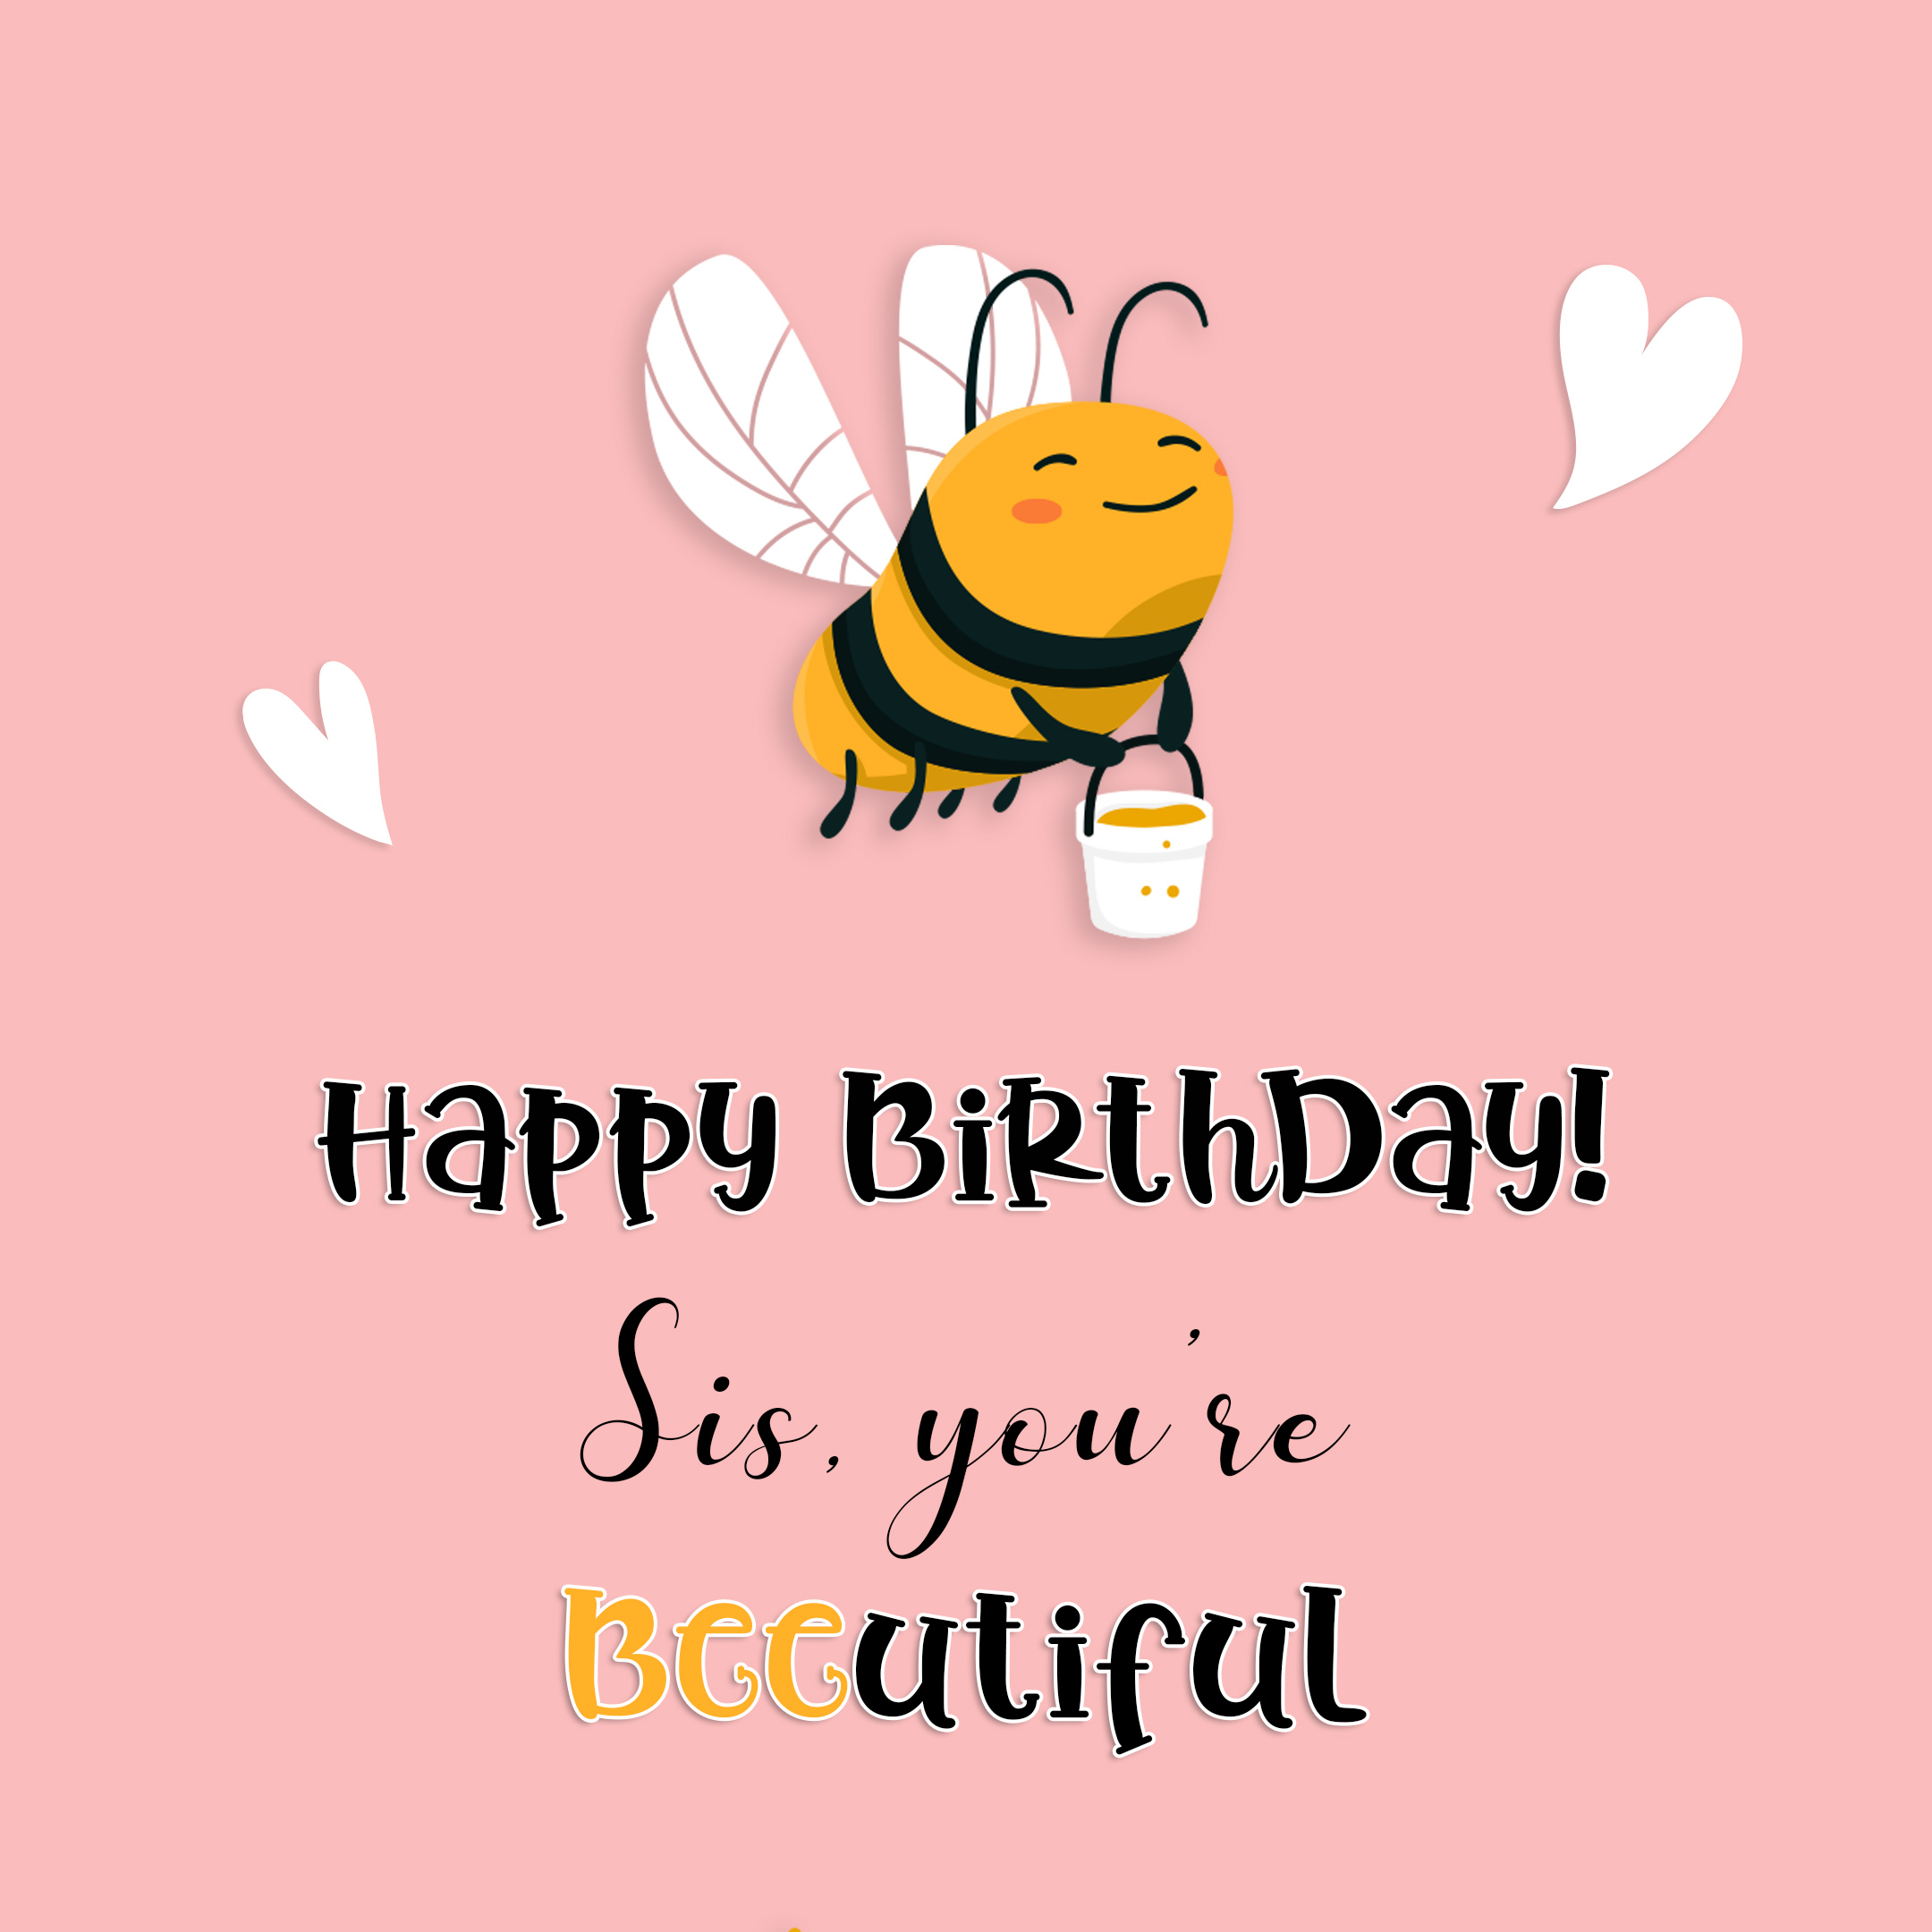 Free Funny Happy Birthday Image For Sister With Bee - birthdayimg.com